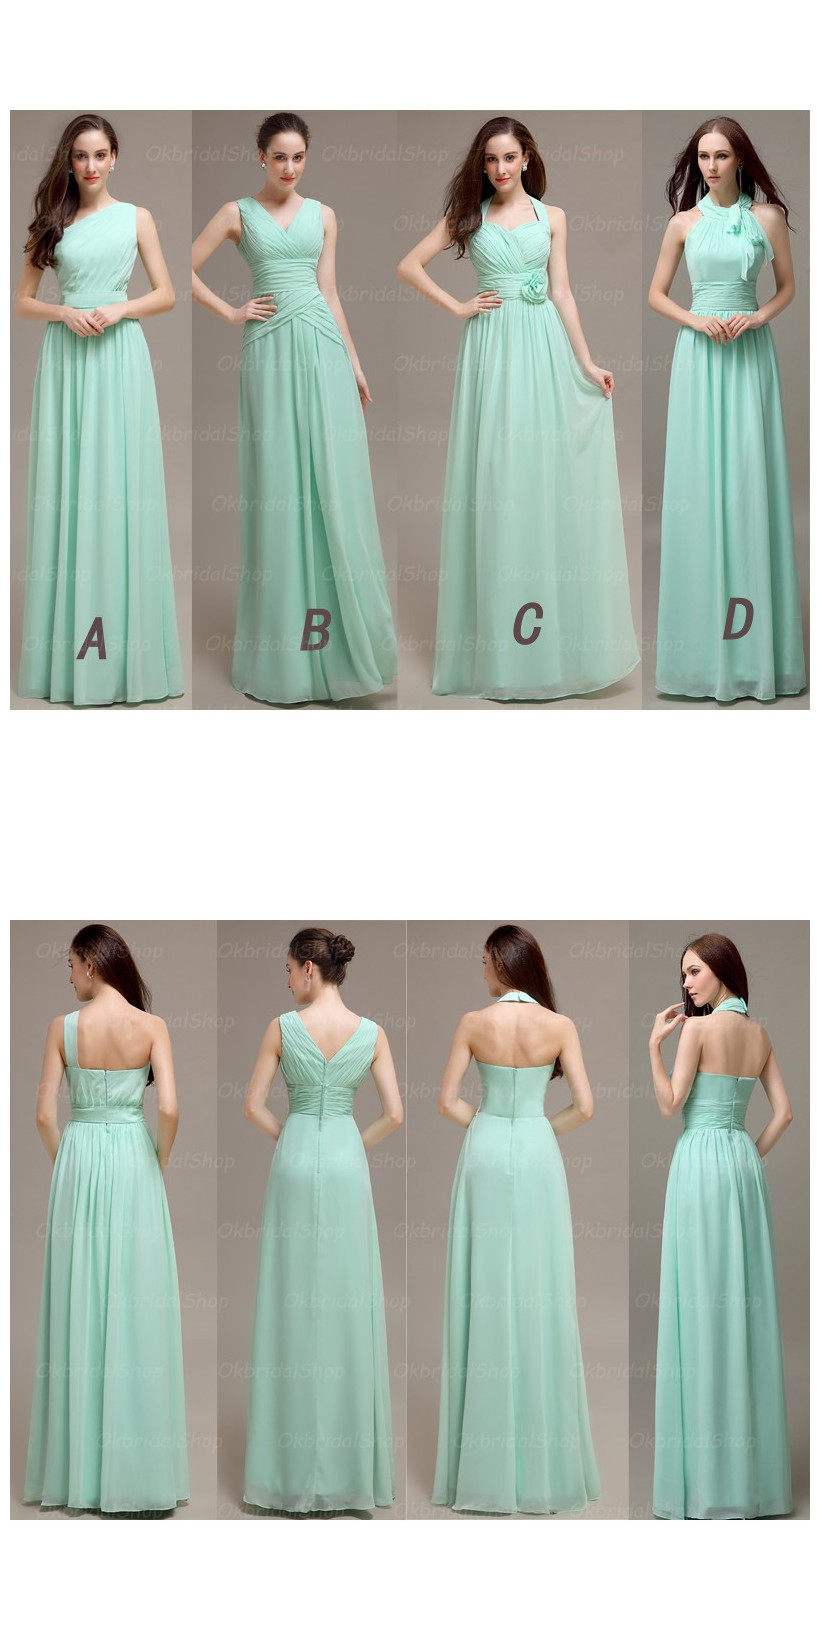 Cheap bridesmaid dresses long bridesmaid dresses chiffon cheap bridesmaid dresses long bridesmaid dresses chiffon bridesmaid dresses chiffon bridesmaid dresses ombrellifo Image collections